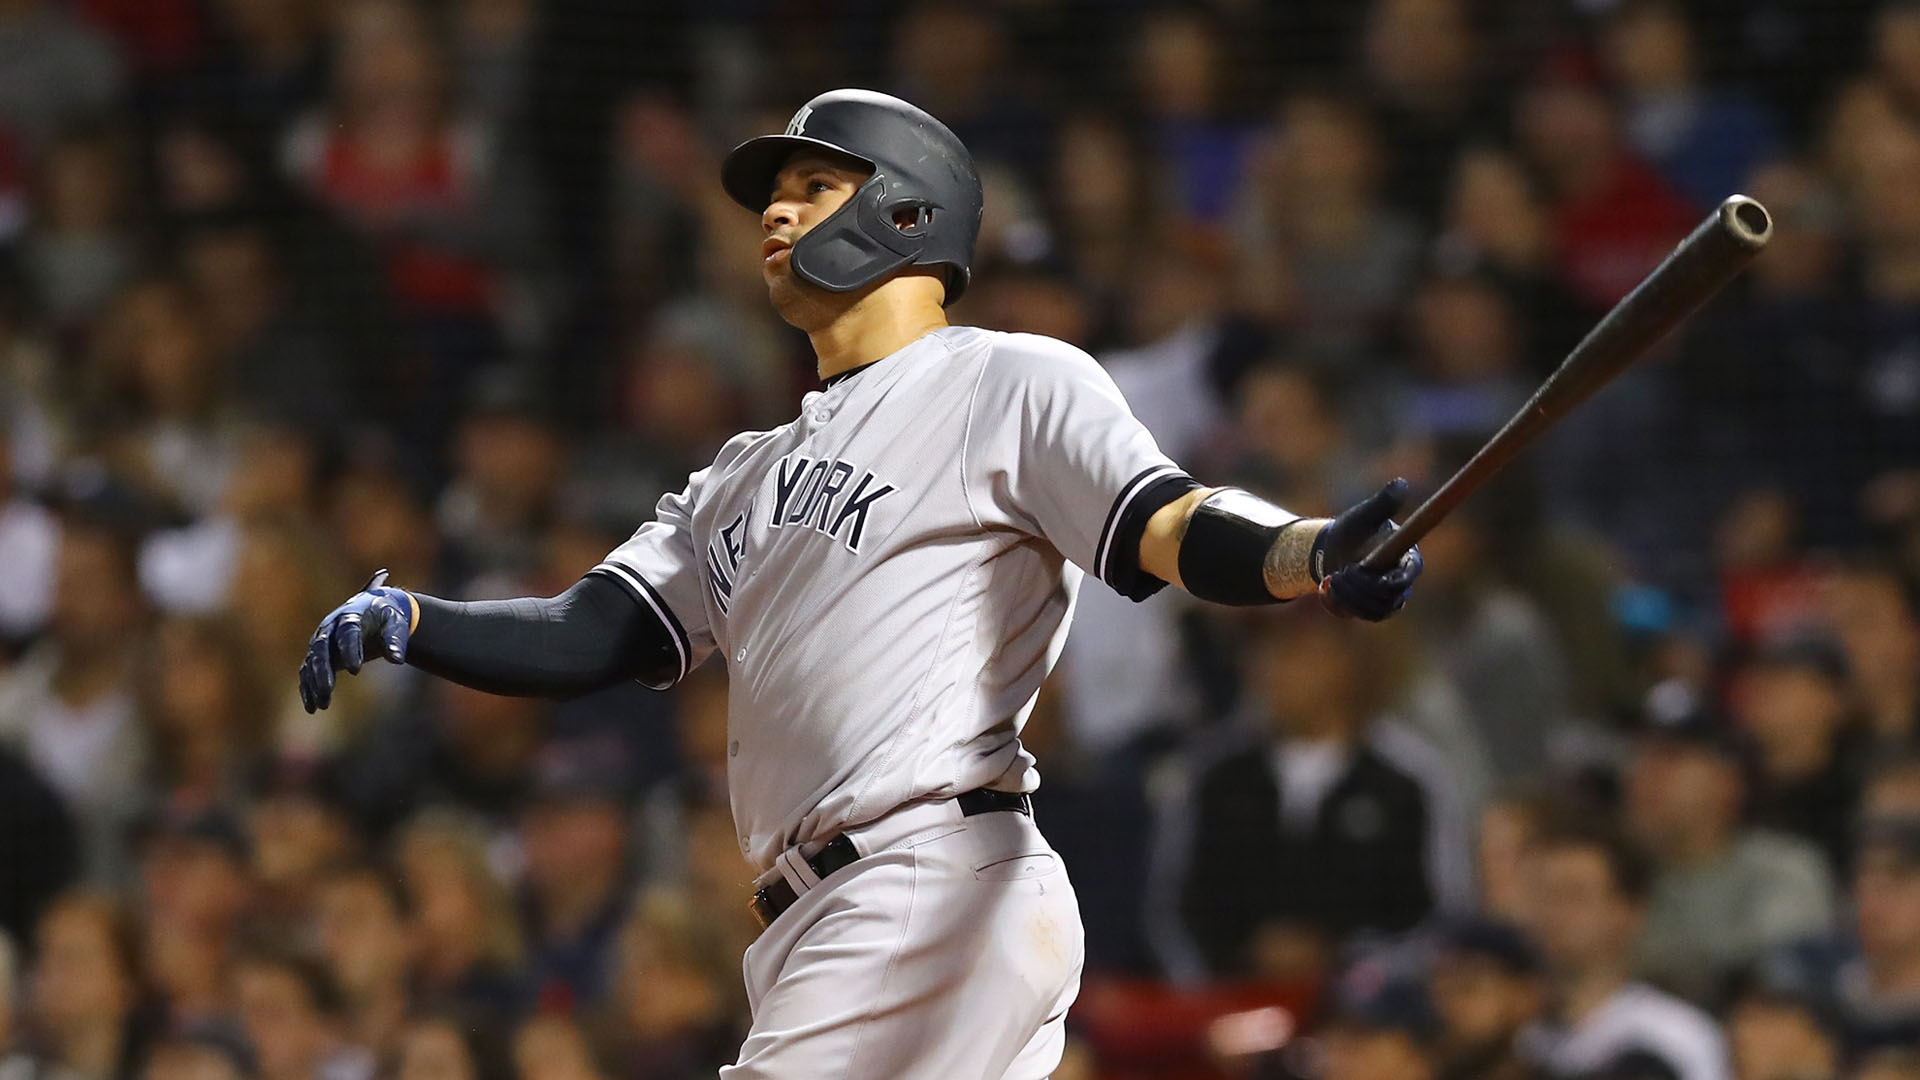 Sox beat Yankees 4-3, advance to ALCS